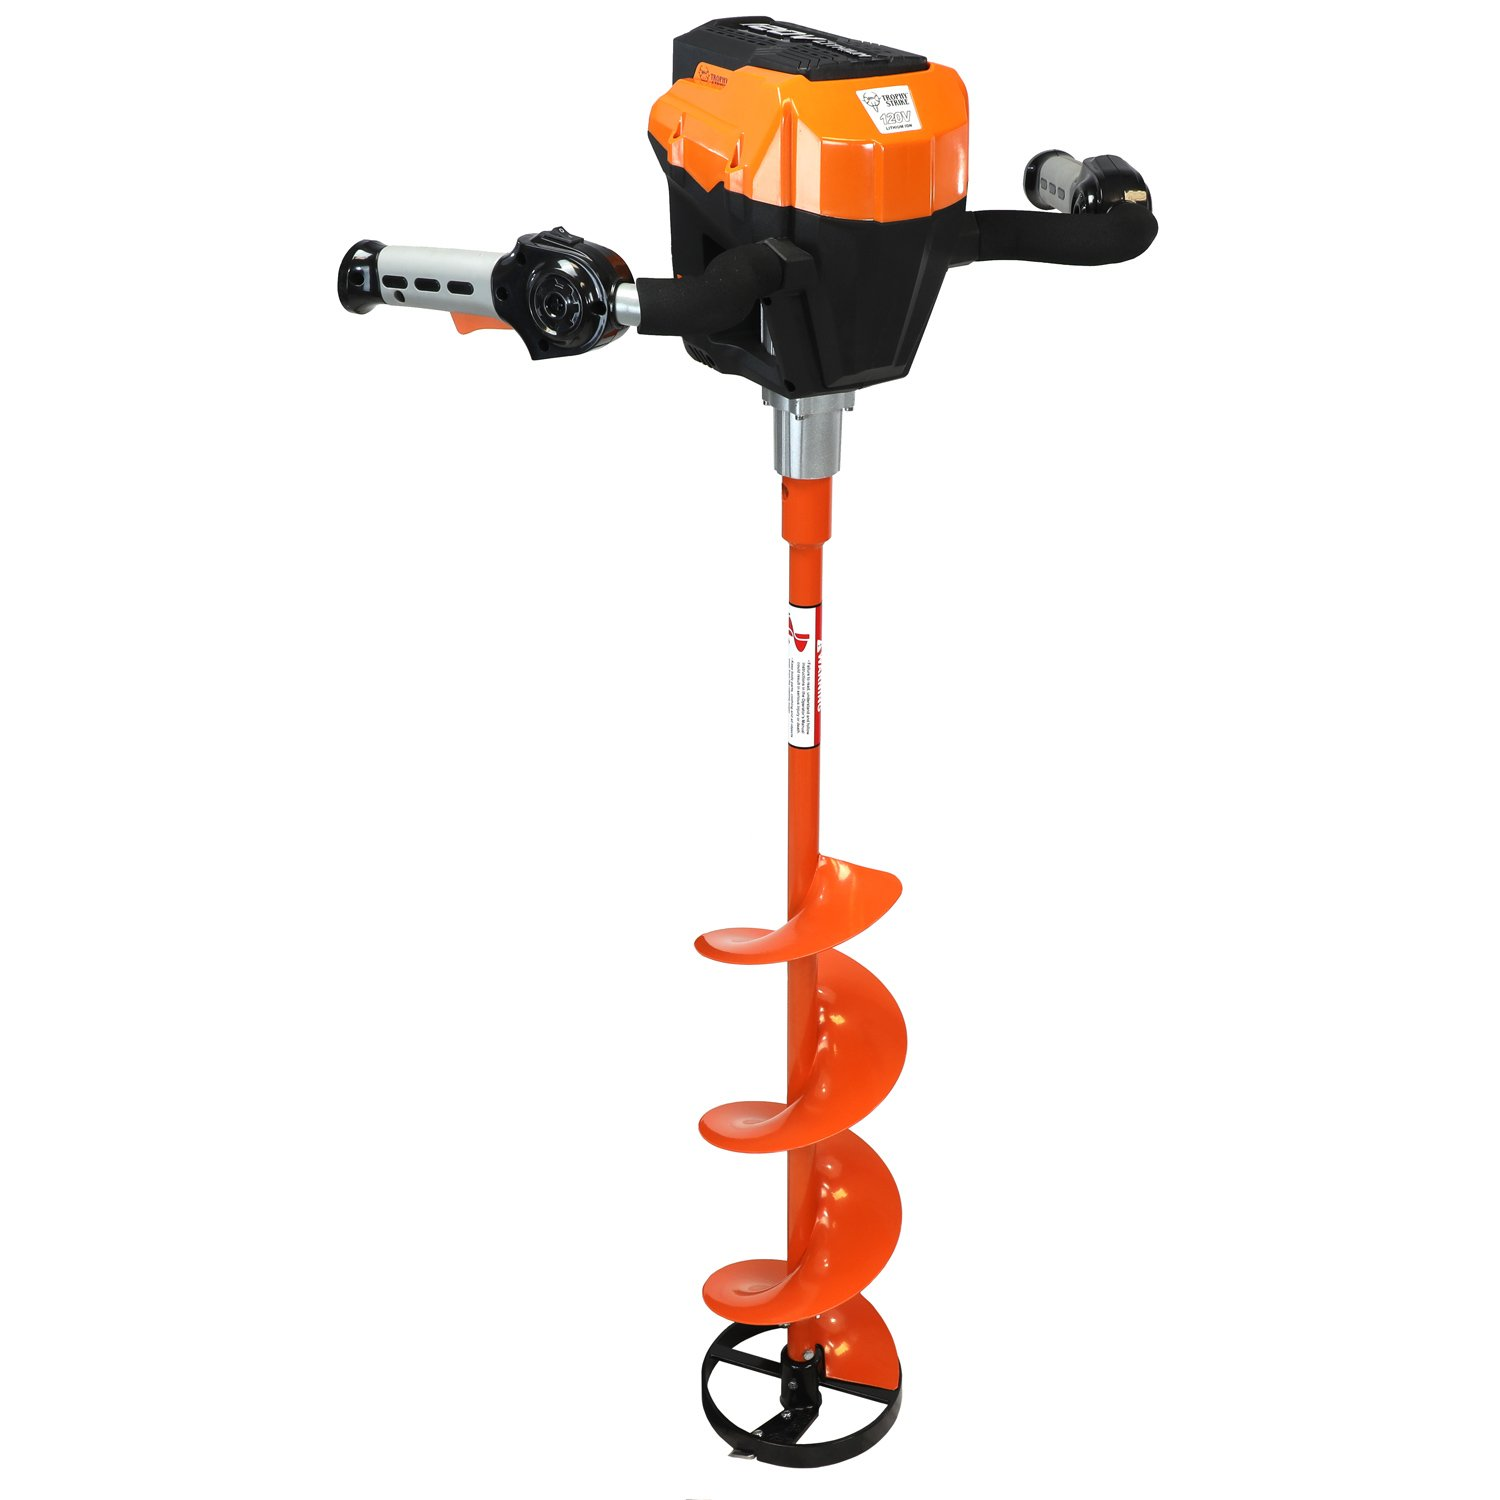 Trophy Strike 120V Lithium Ion Battery Ice Auger 2018 Version - Everything You Need to Start Drilling! by Trophy Strike